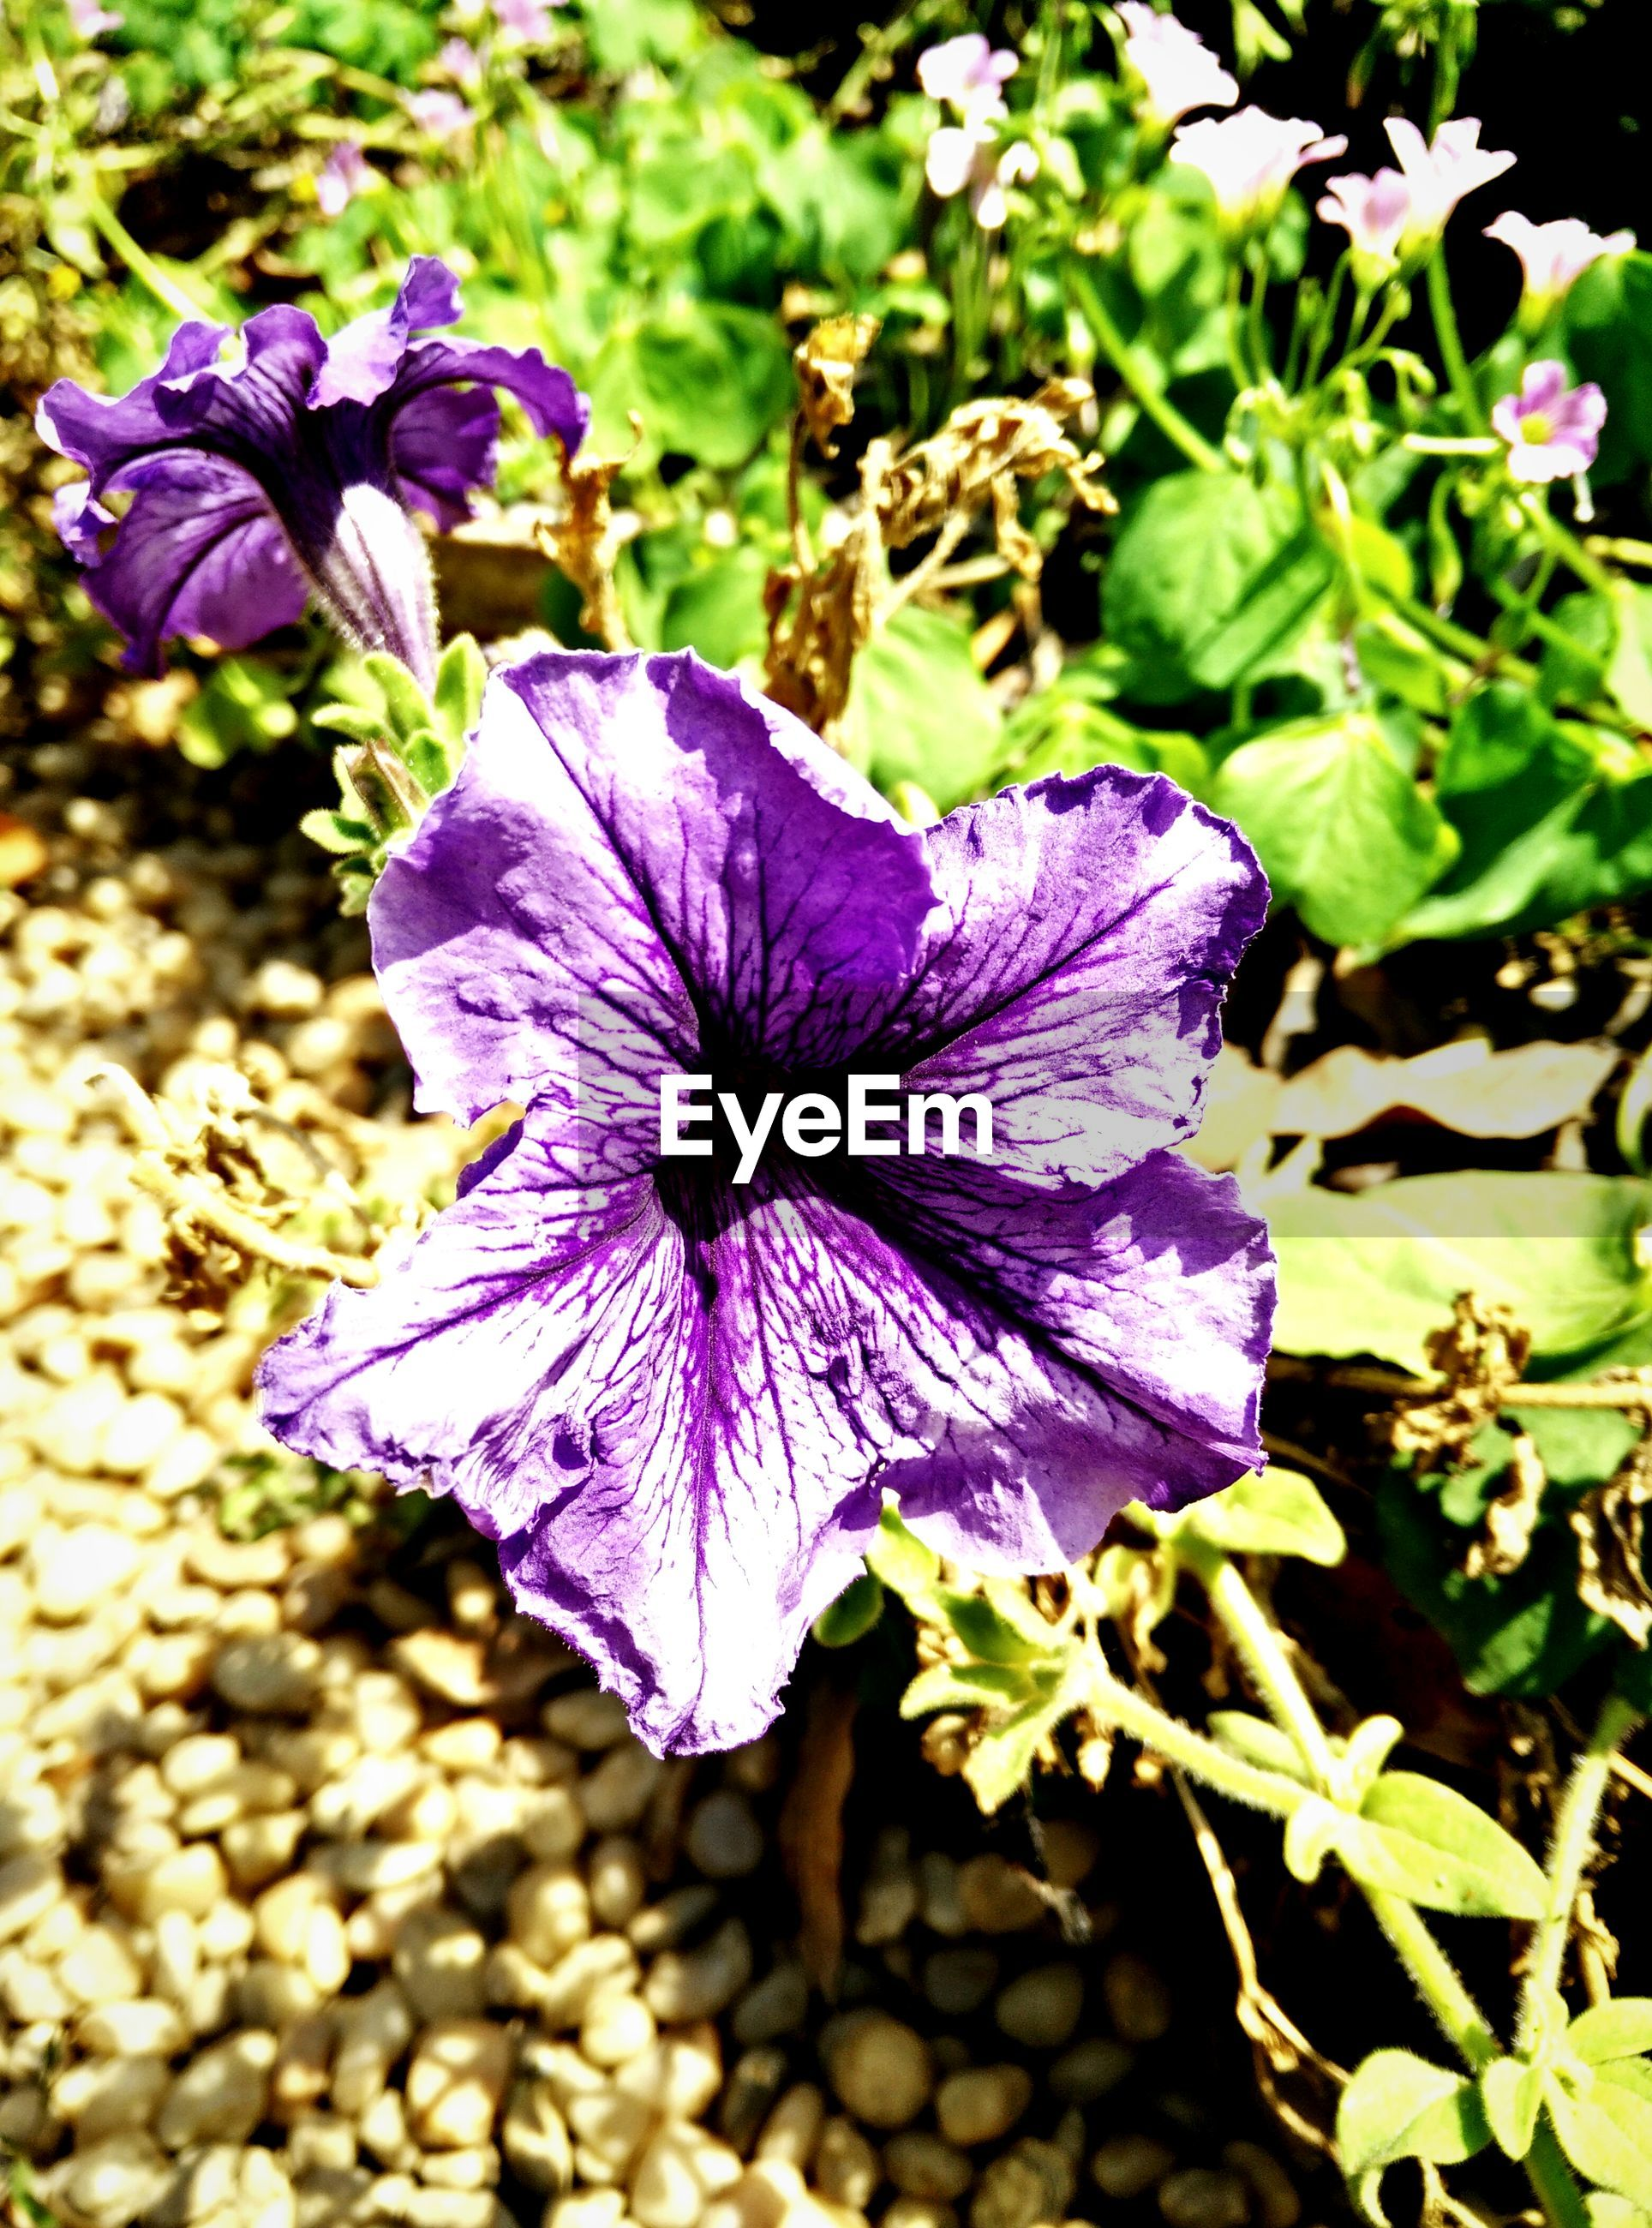 flower, purple, freshness, petal, flower head, fragility, growth, beauty in nature, close-up, blooming, nature, plant, in bloom, pollen, focus on foreground, high angle view, stamen, leaf, blossom, single flower